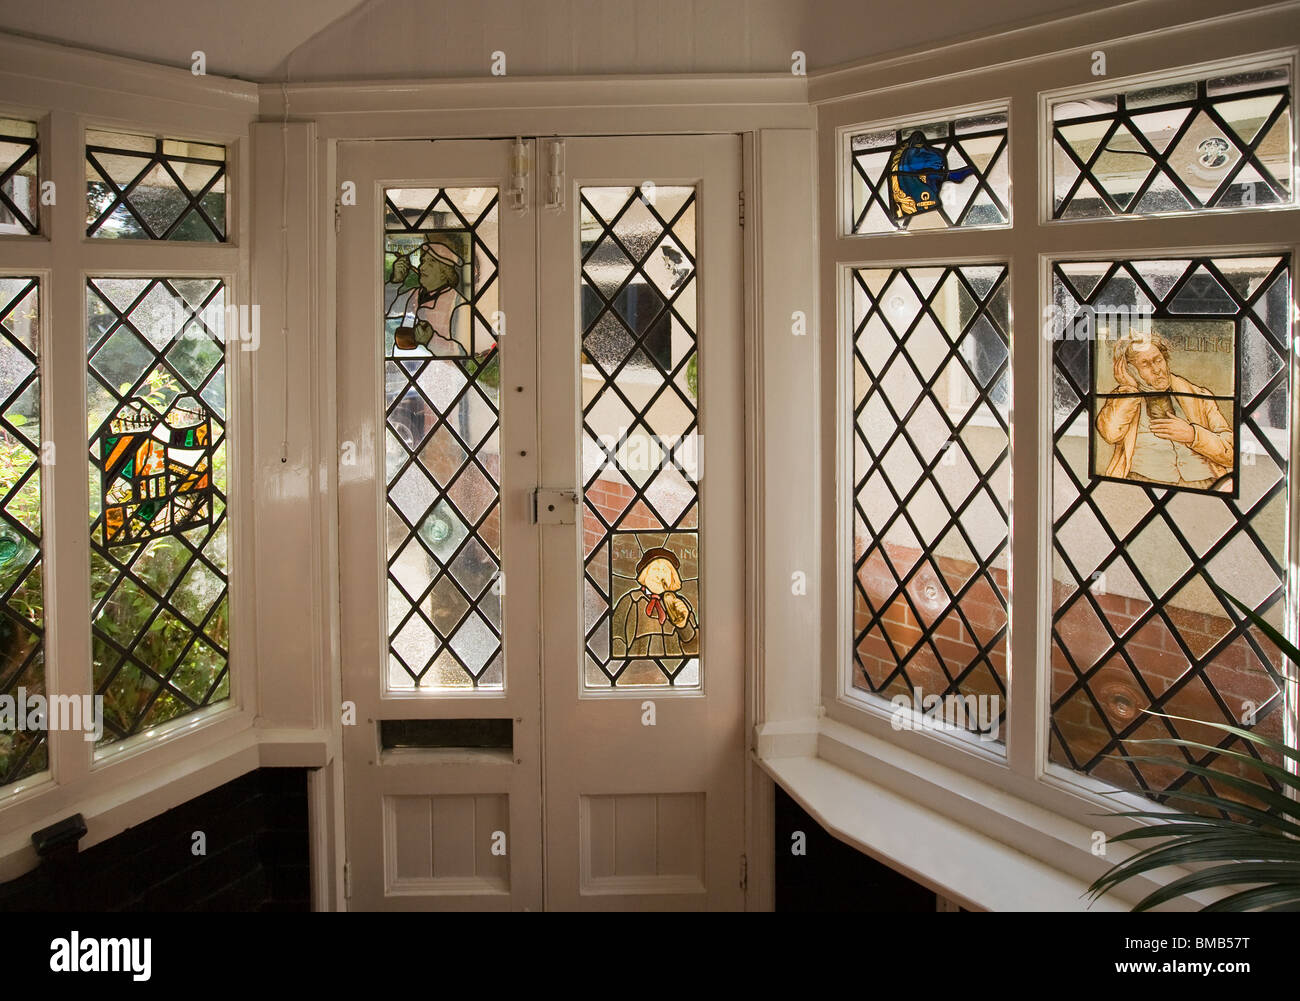 Houses Edwardian Arts And Crafts House Decorative Stained Glass - Edwardian house interiors